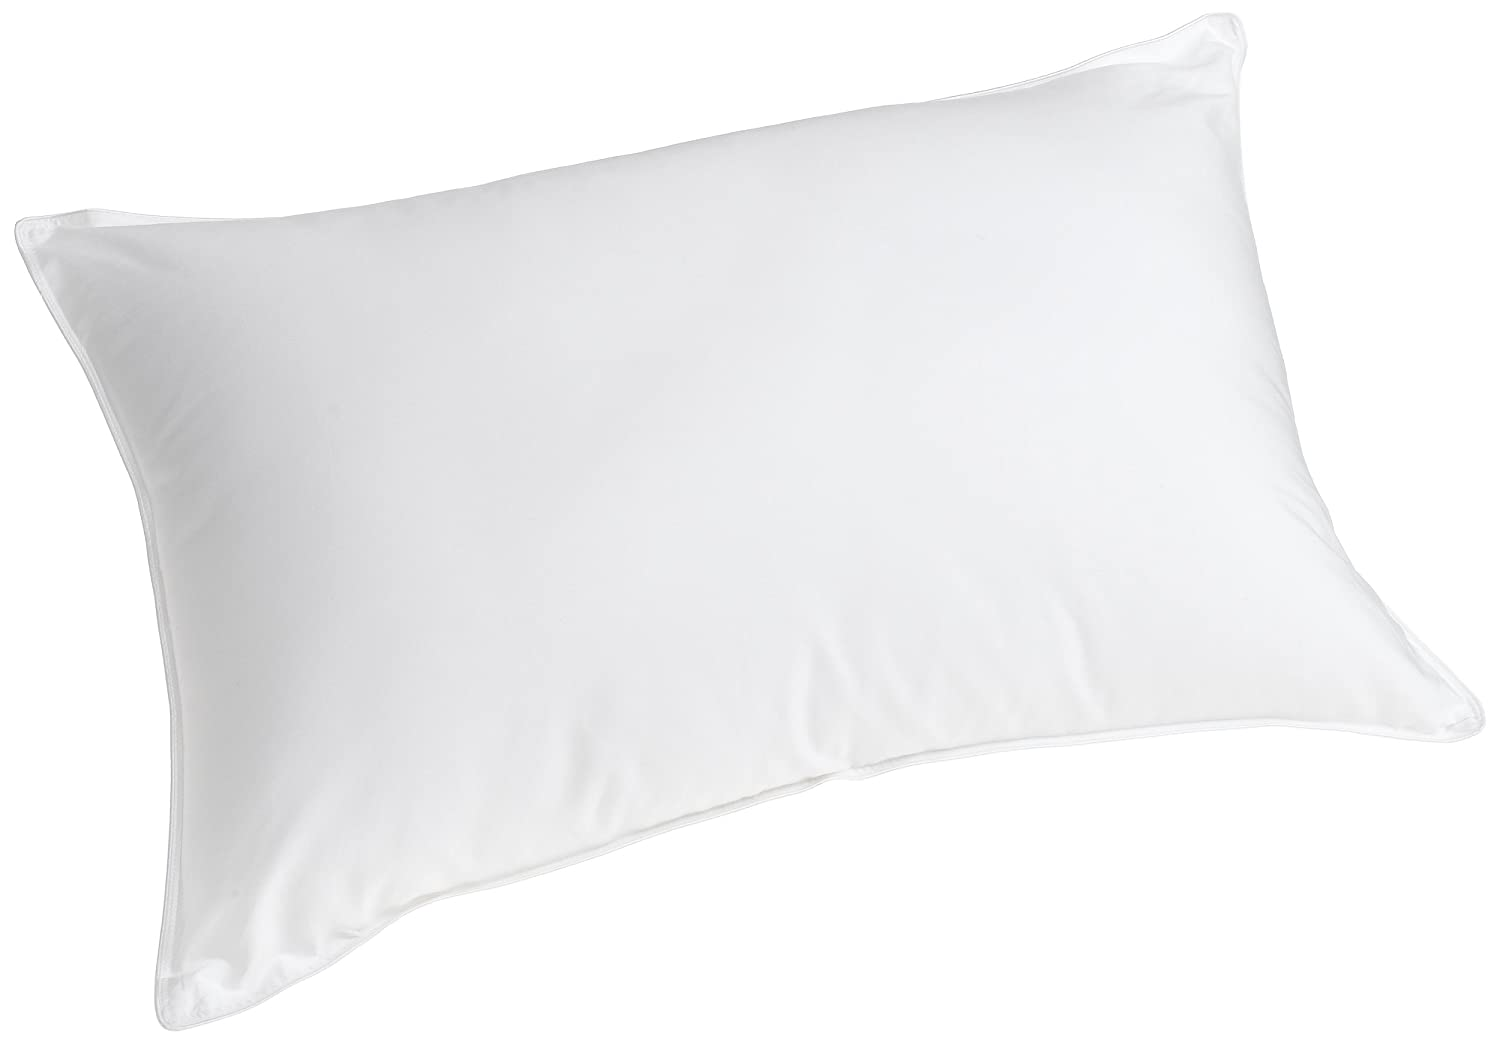 White bed pillows - Amazon Com Slumberfresh Polyester Bed Pillow Standard Home Kitchen